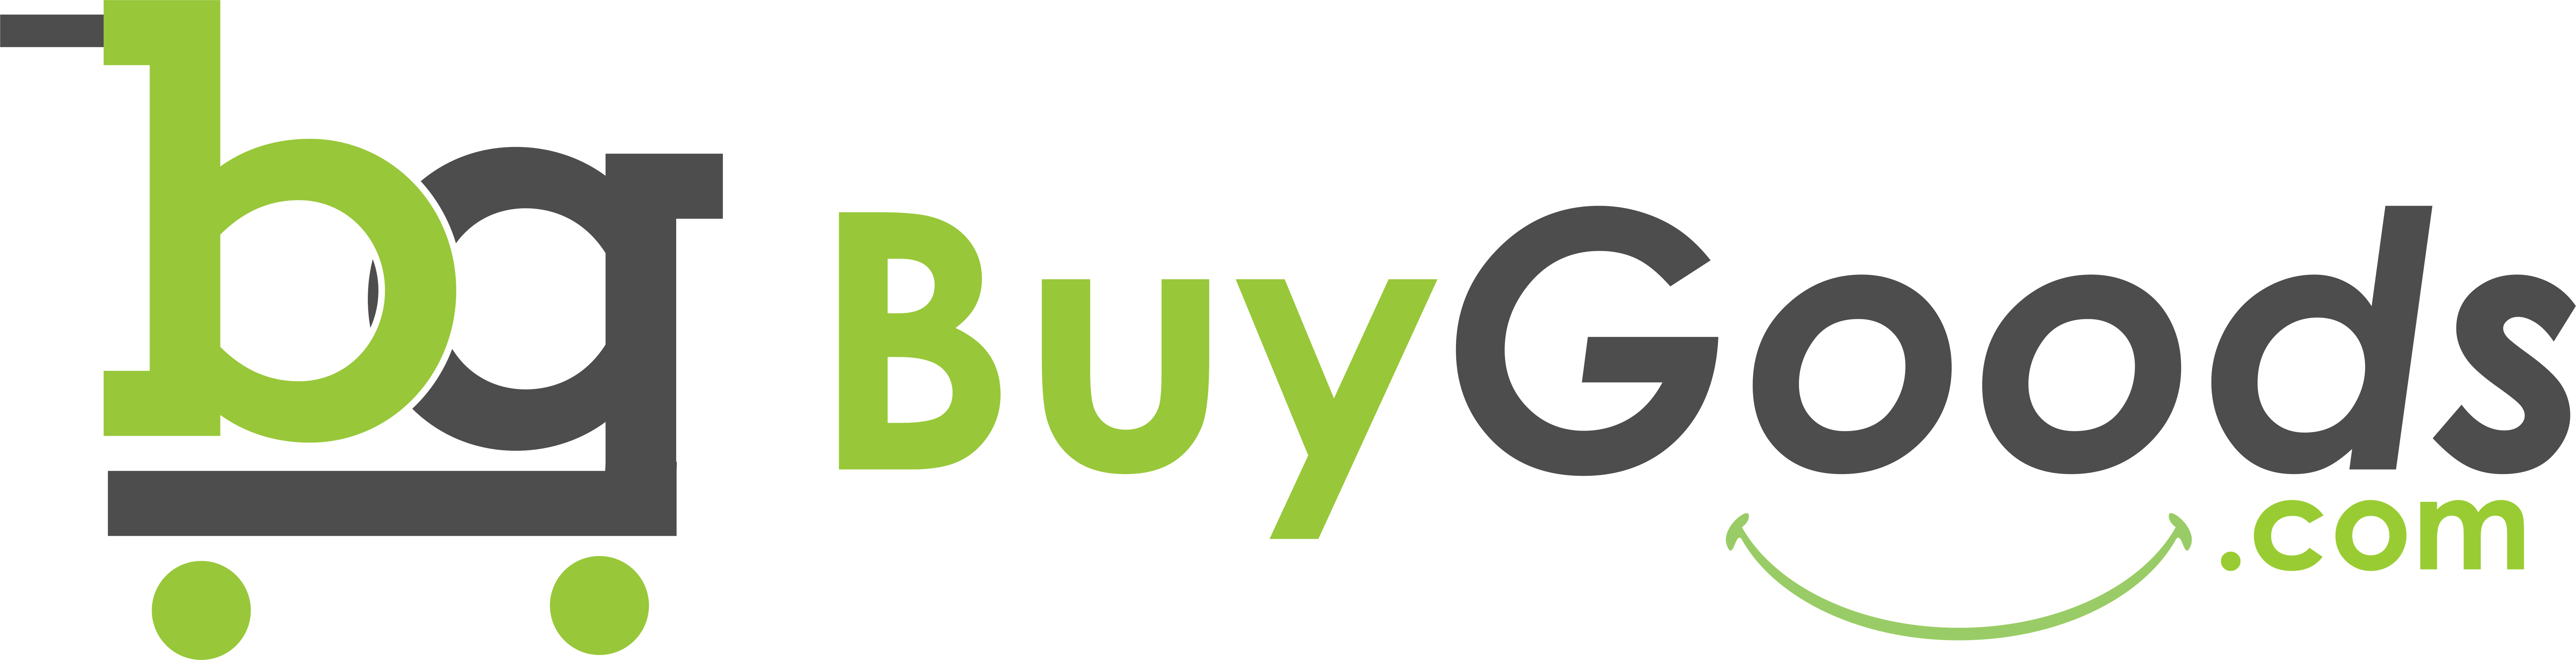 Online Retail Store (BuyGoods) needs a compelling and energetic logo